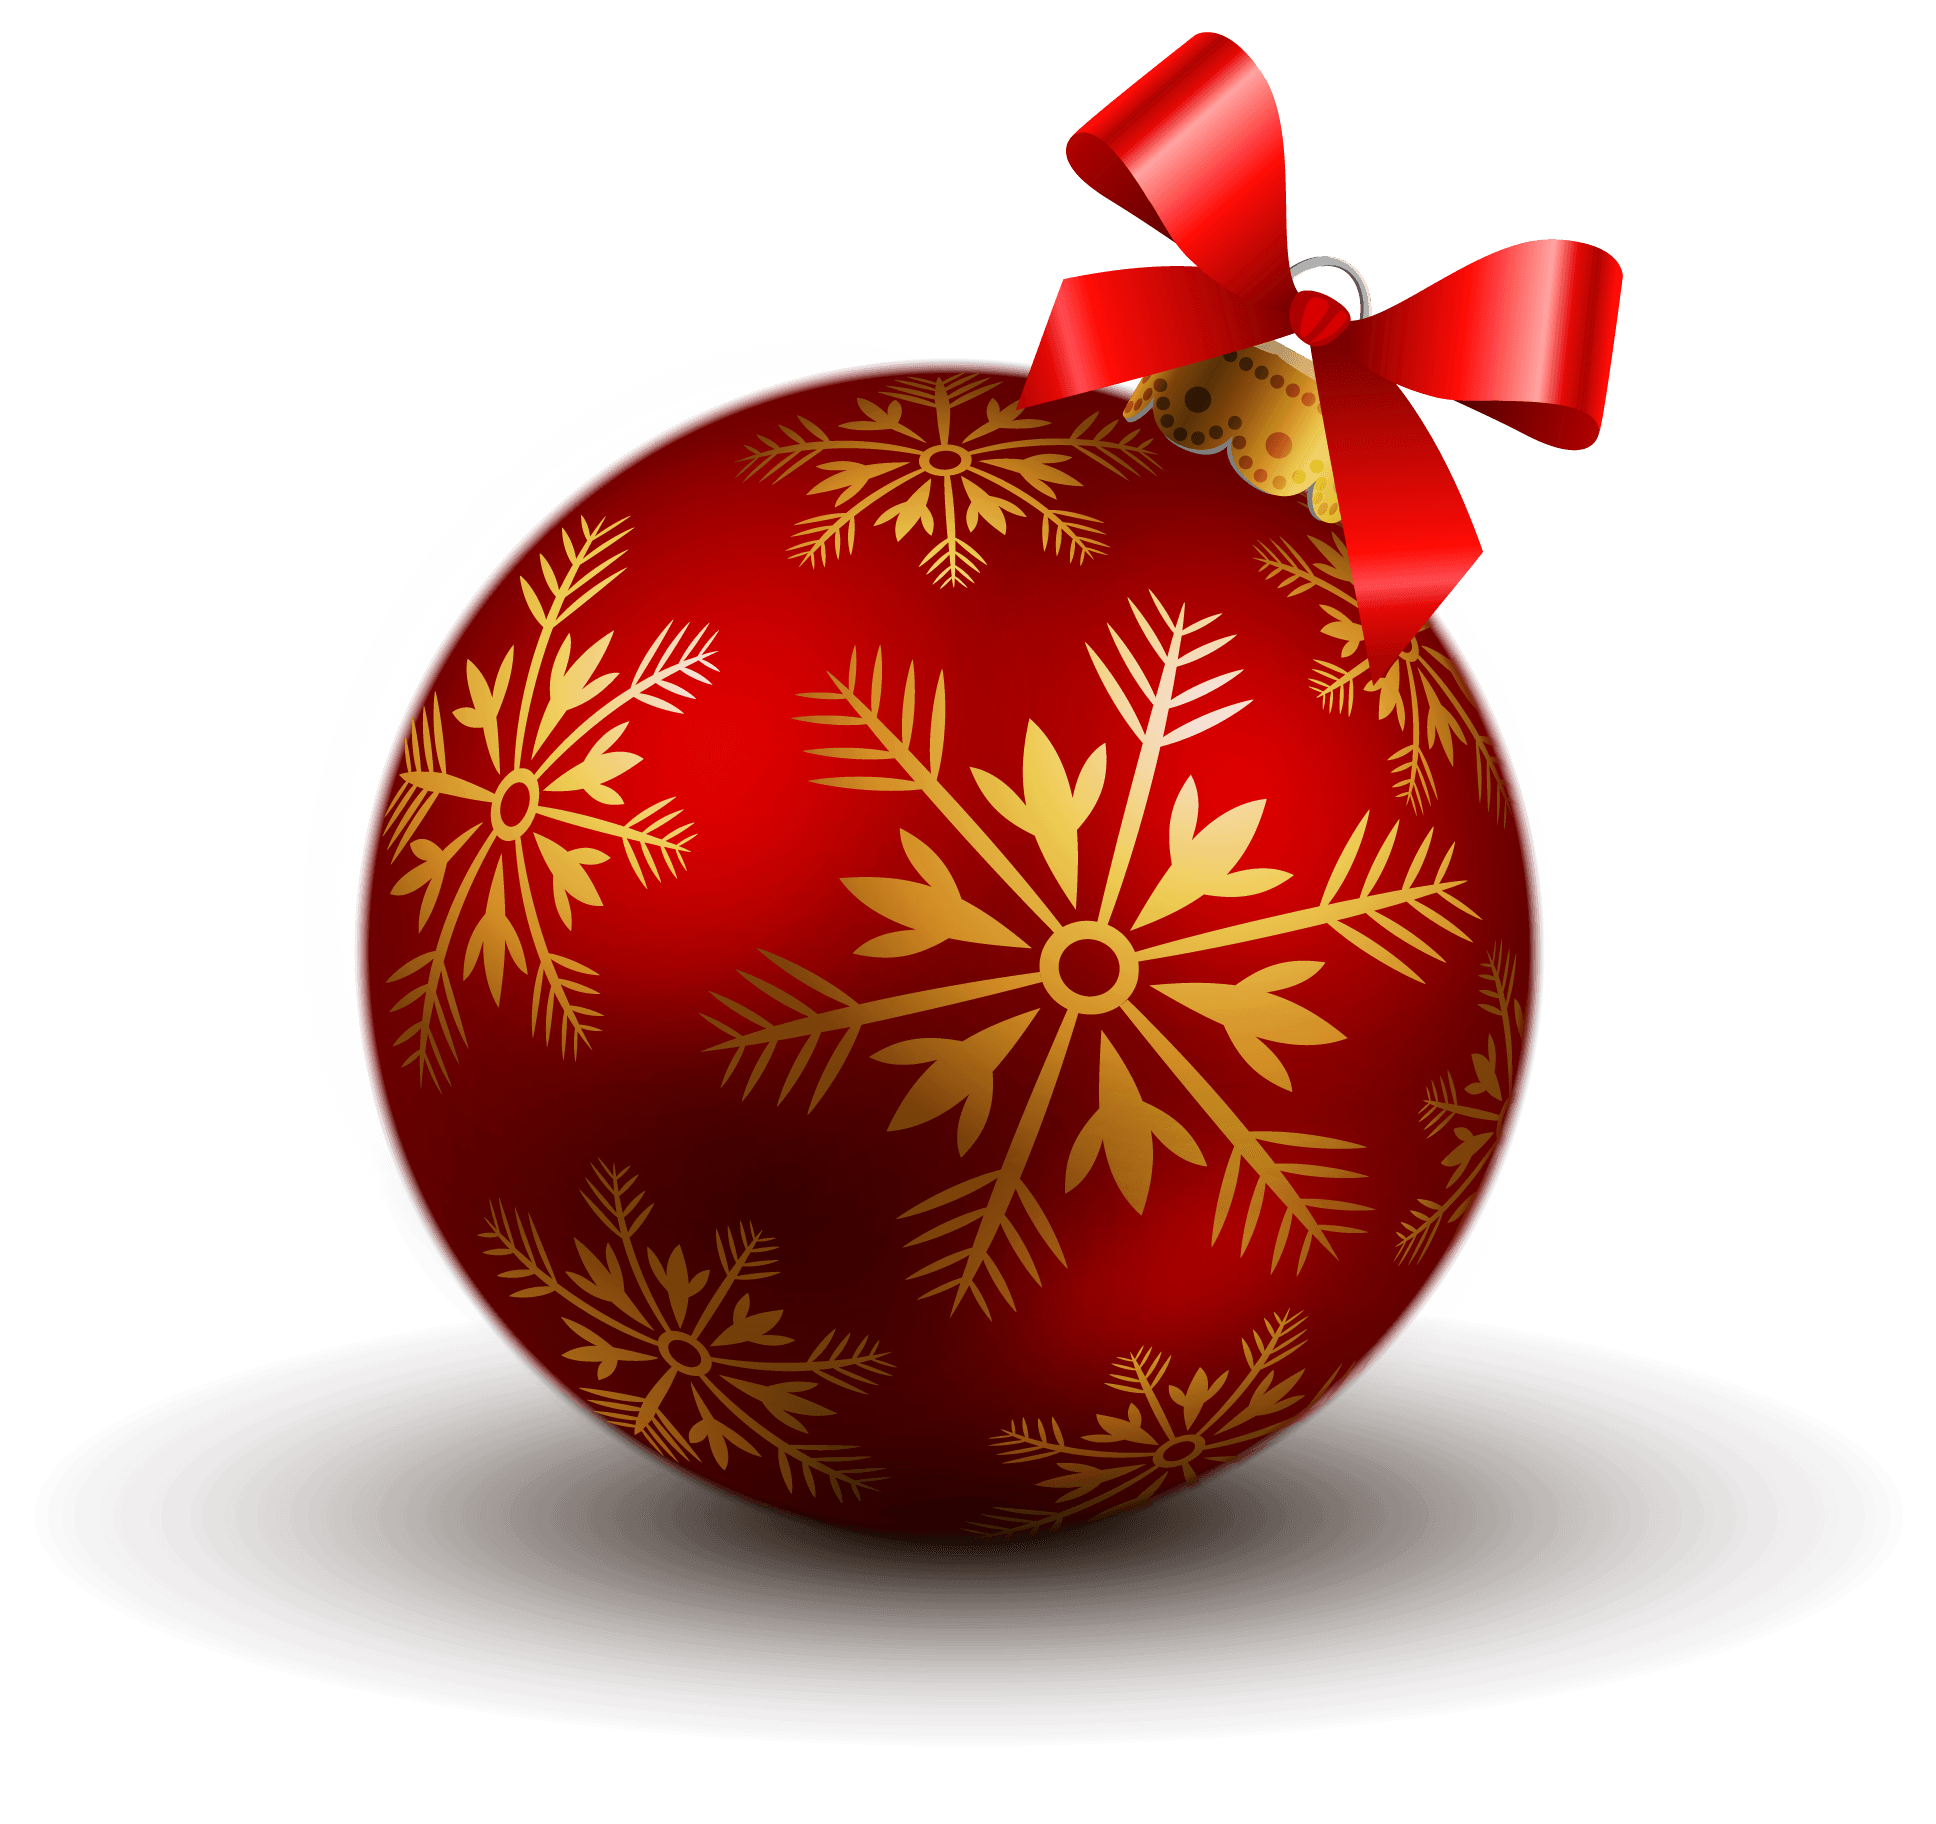 Transparent christmas png. Ball stickpng